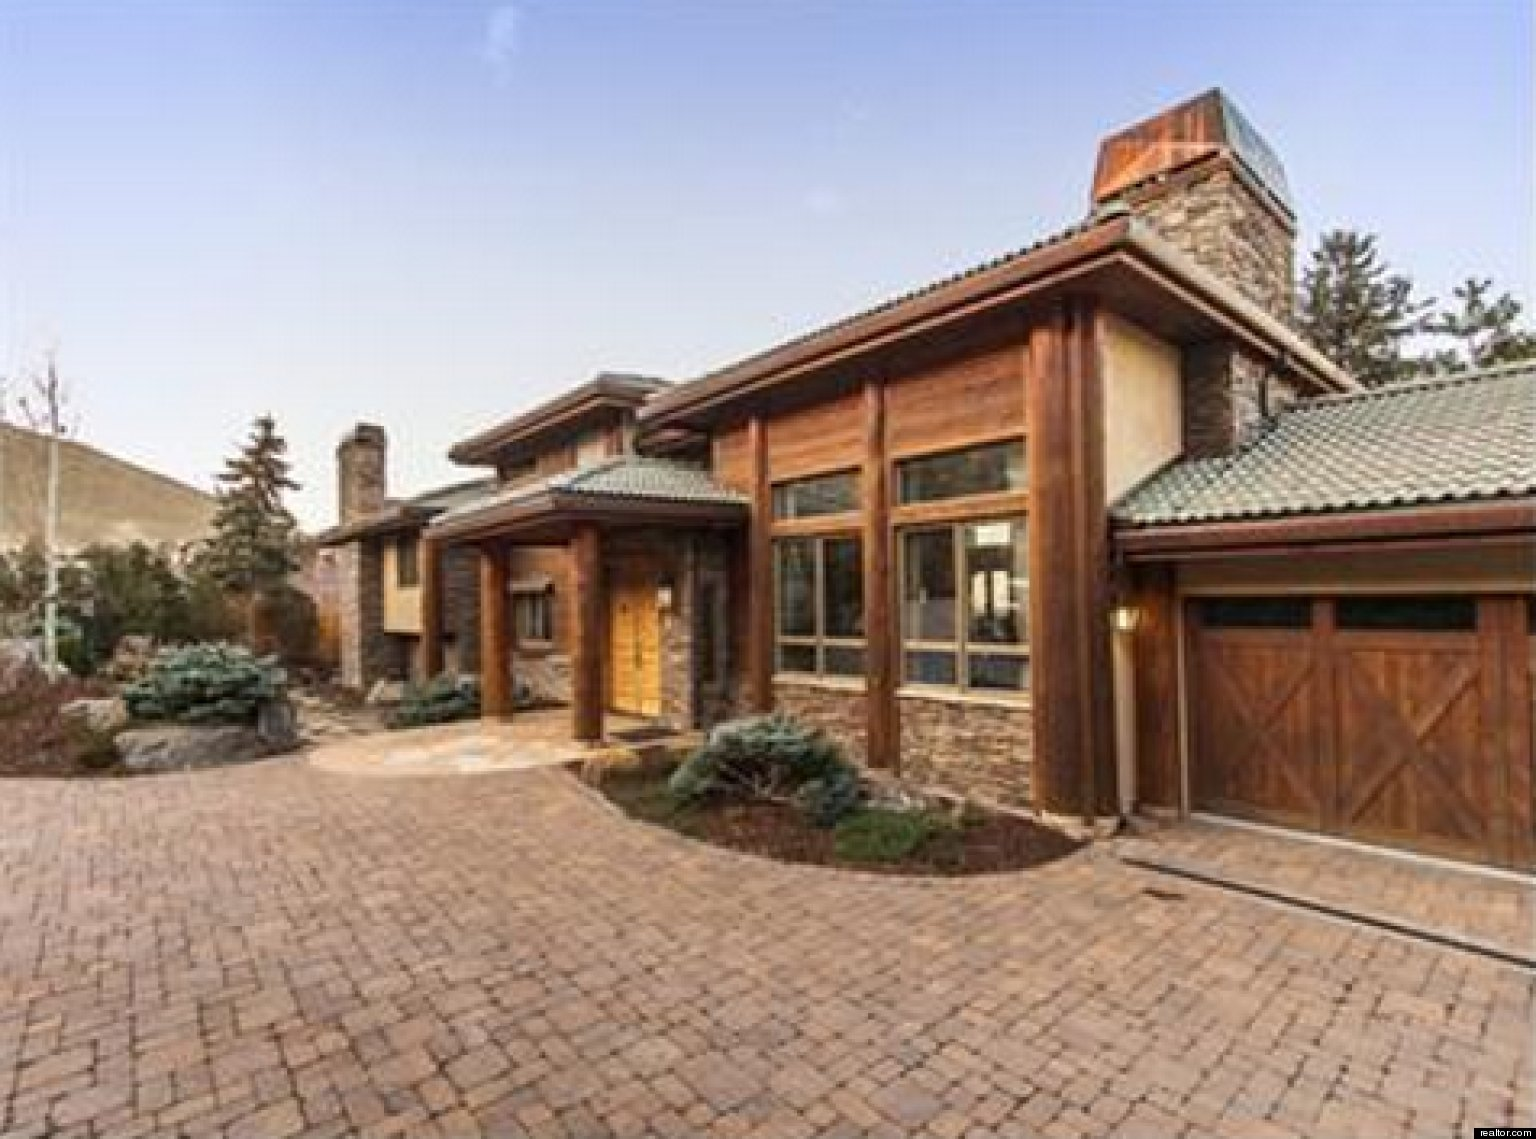 Top 10 most expensive homes in boulder colo 2013 for Most expensive homes in colorado